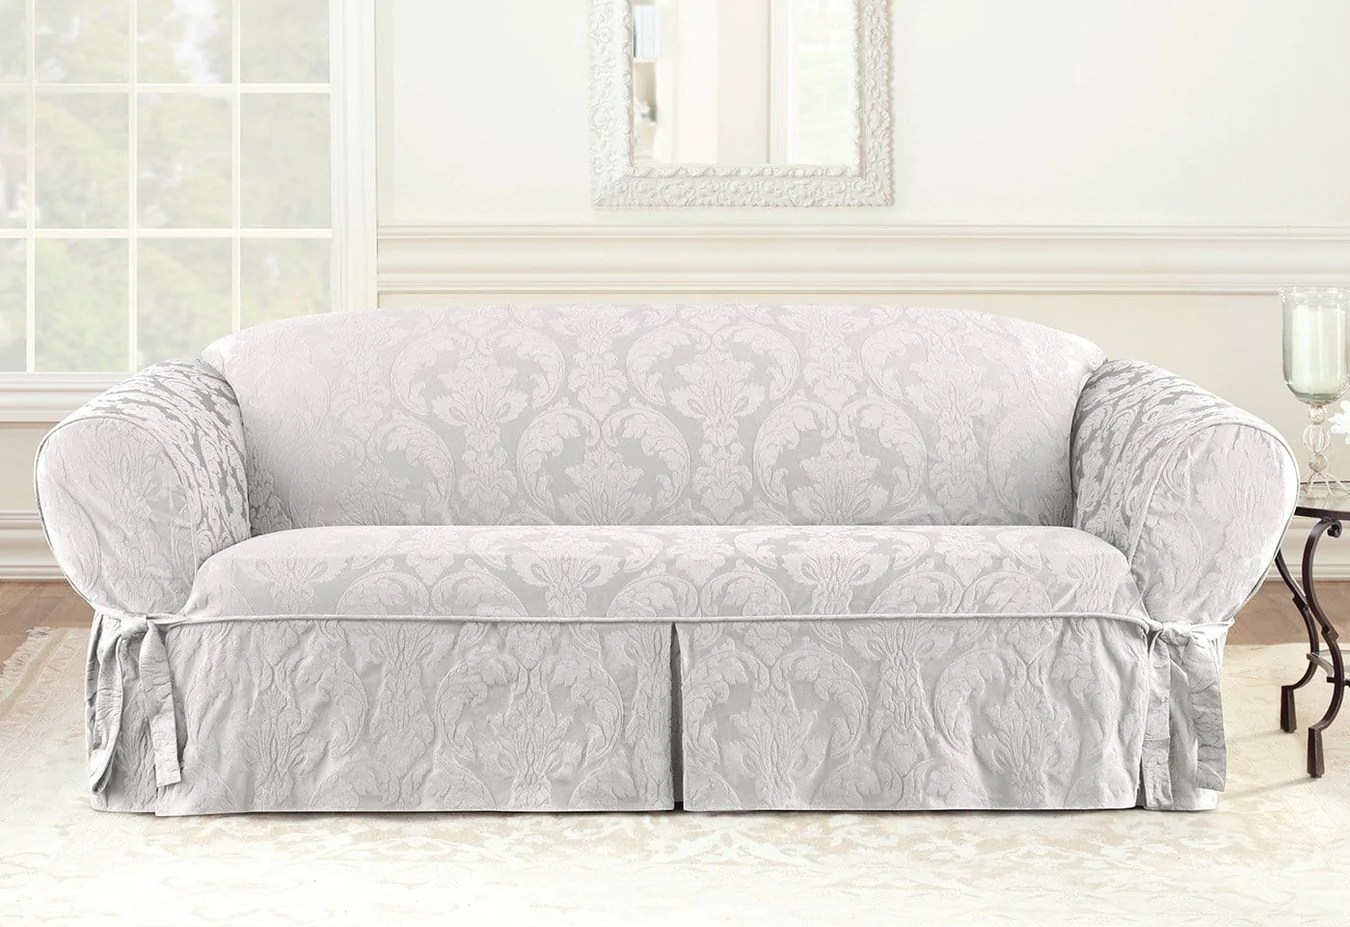 Sofa Slipcovers Matelasse Damask One Piece Sofa Slipcover